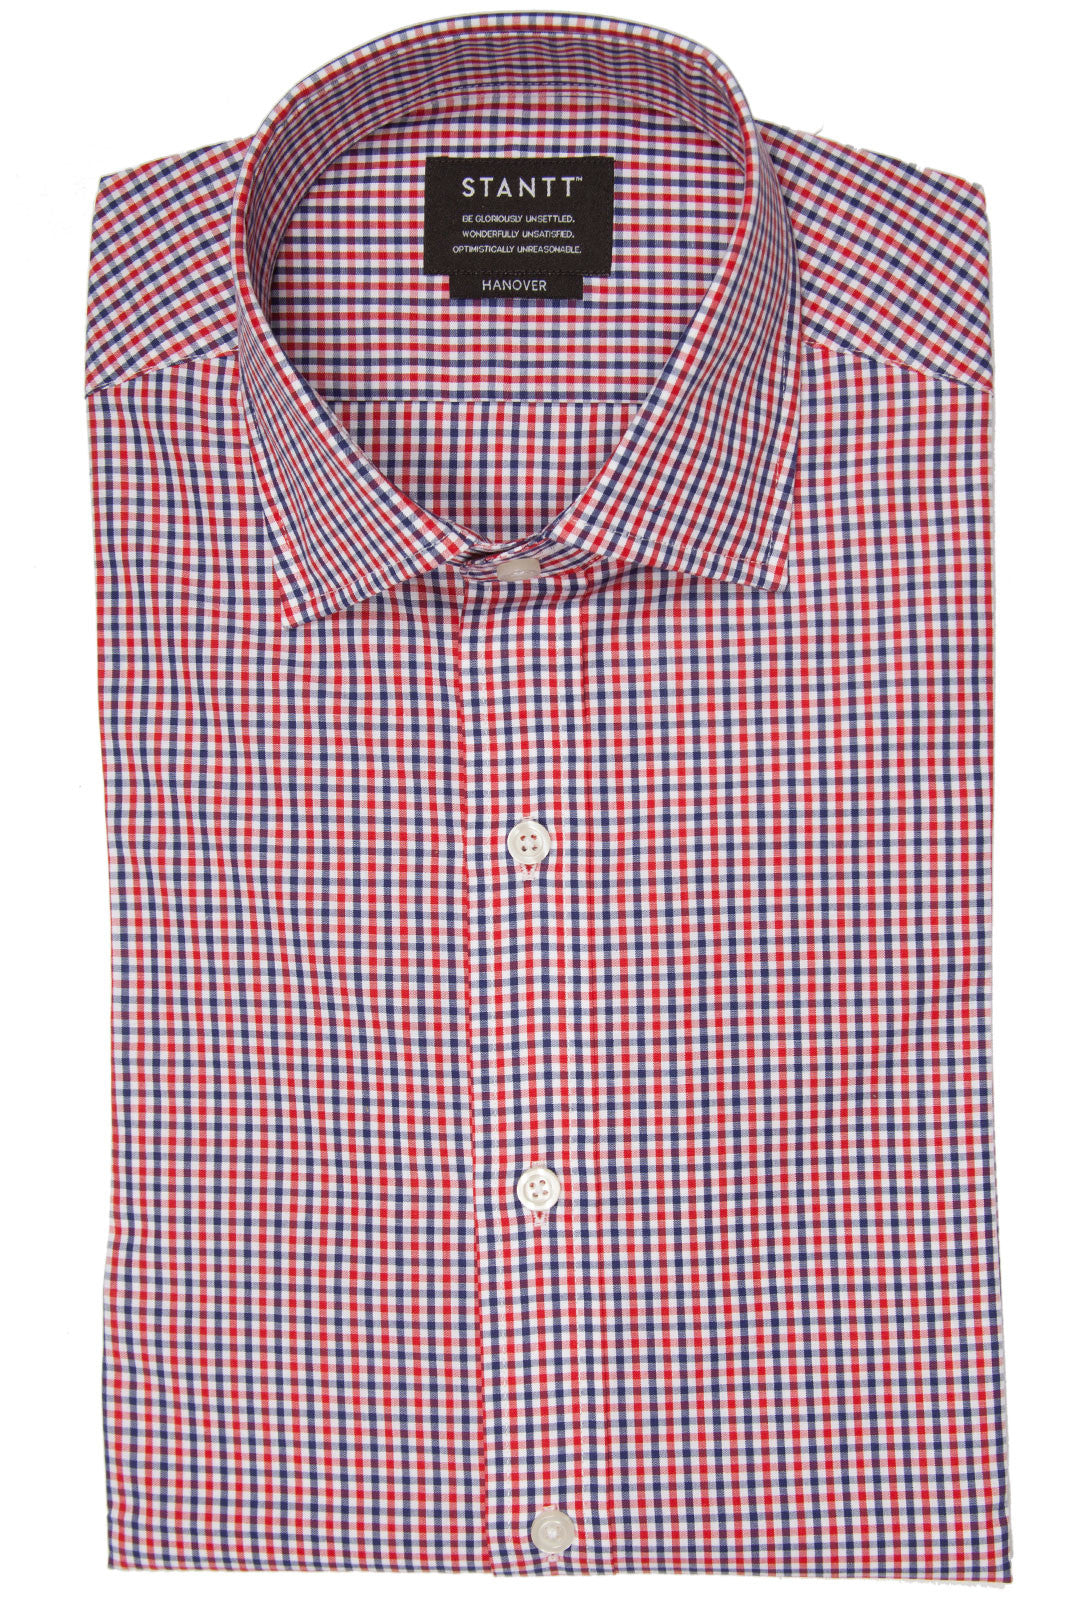 Navy and Red Gingham: Button-Down Collar, Barrel Cuff